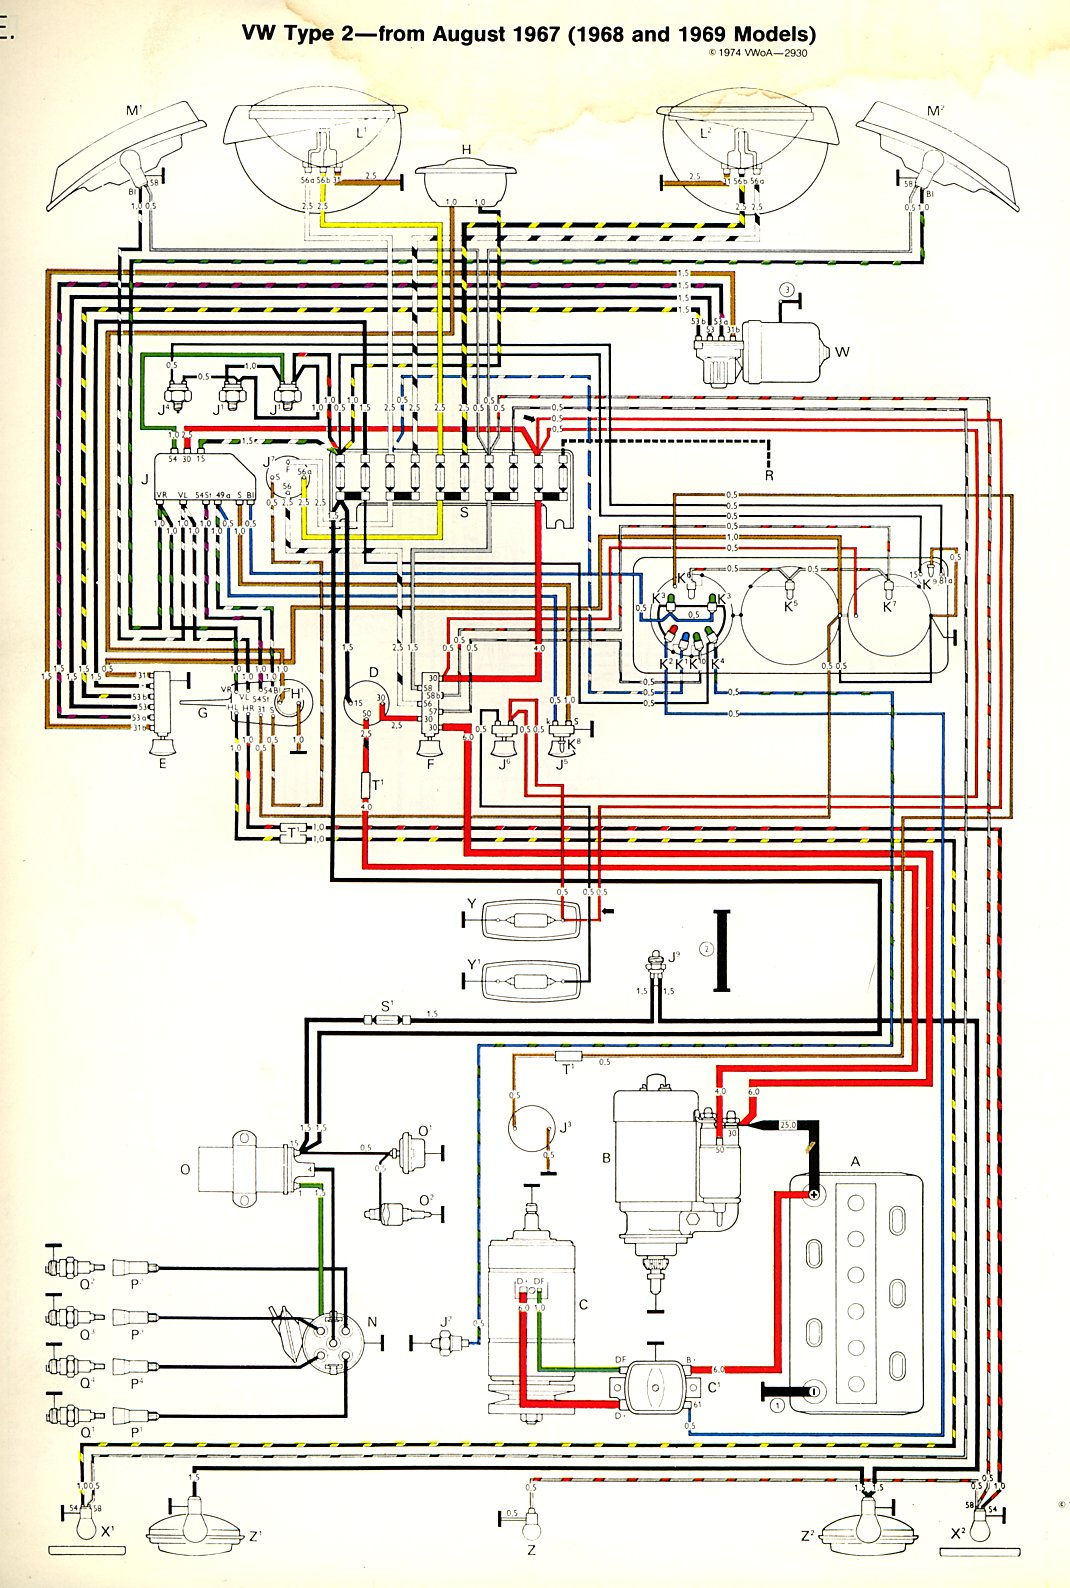 Type 2 Wiring Diagrams 1972 F250 Ignition Schematic